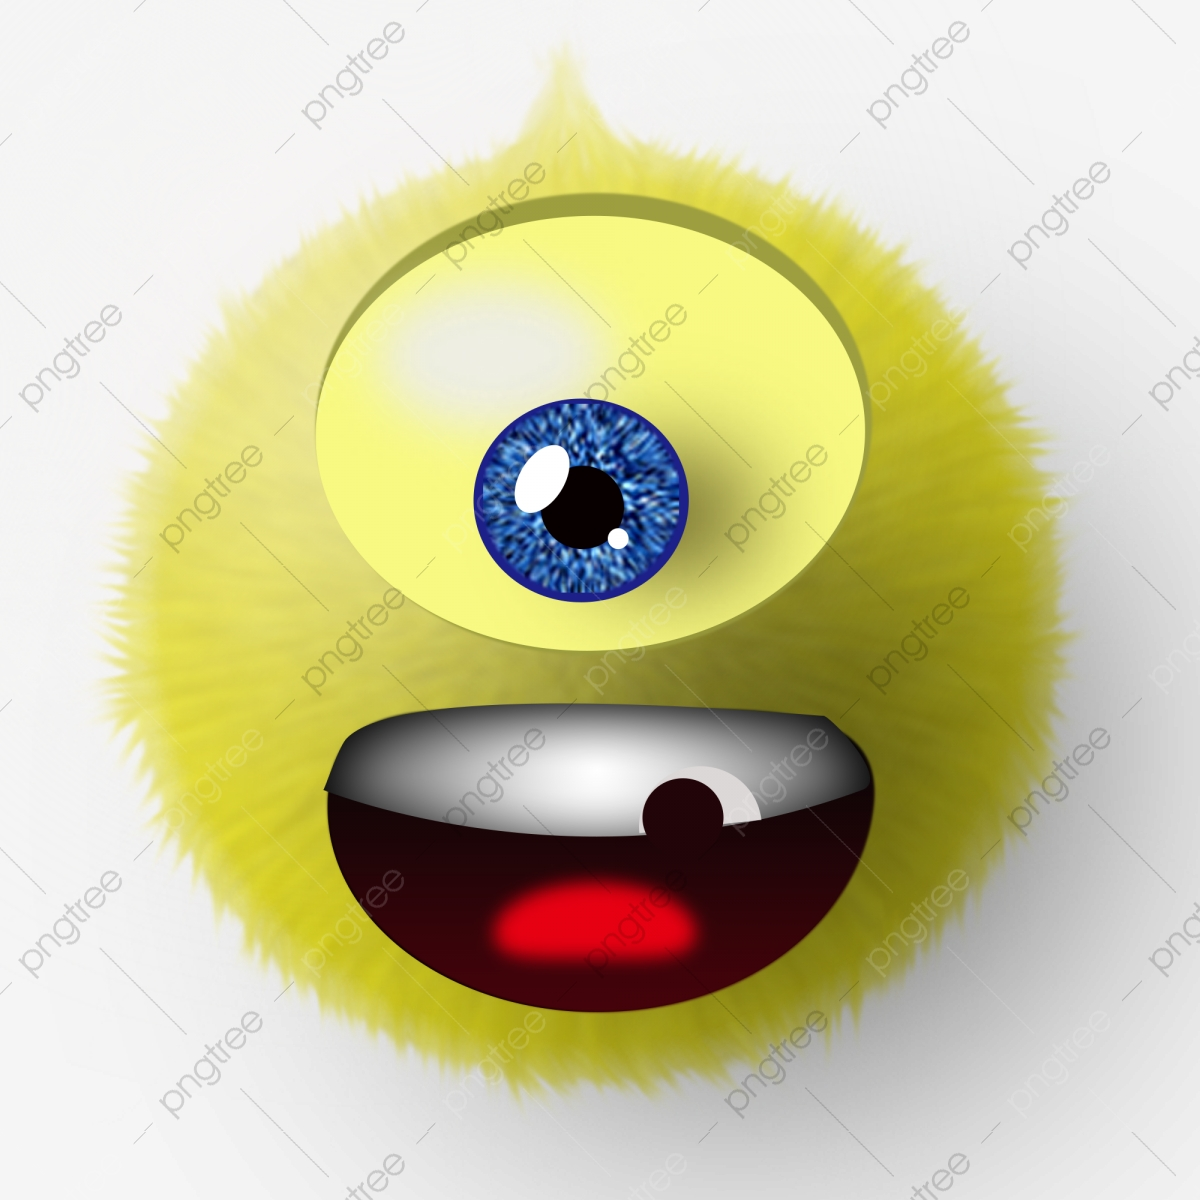 hight resolution of commercial use resource upgrade to premium plan and get license authorization upgradenow blue monster monster clipart